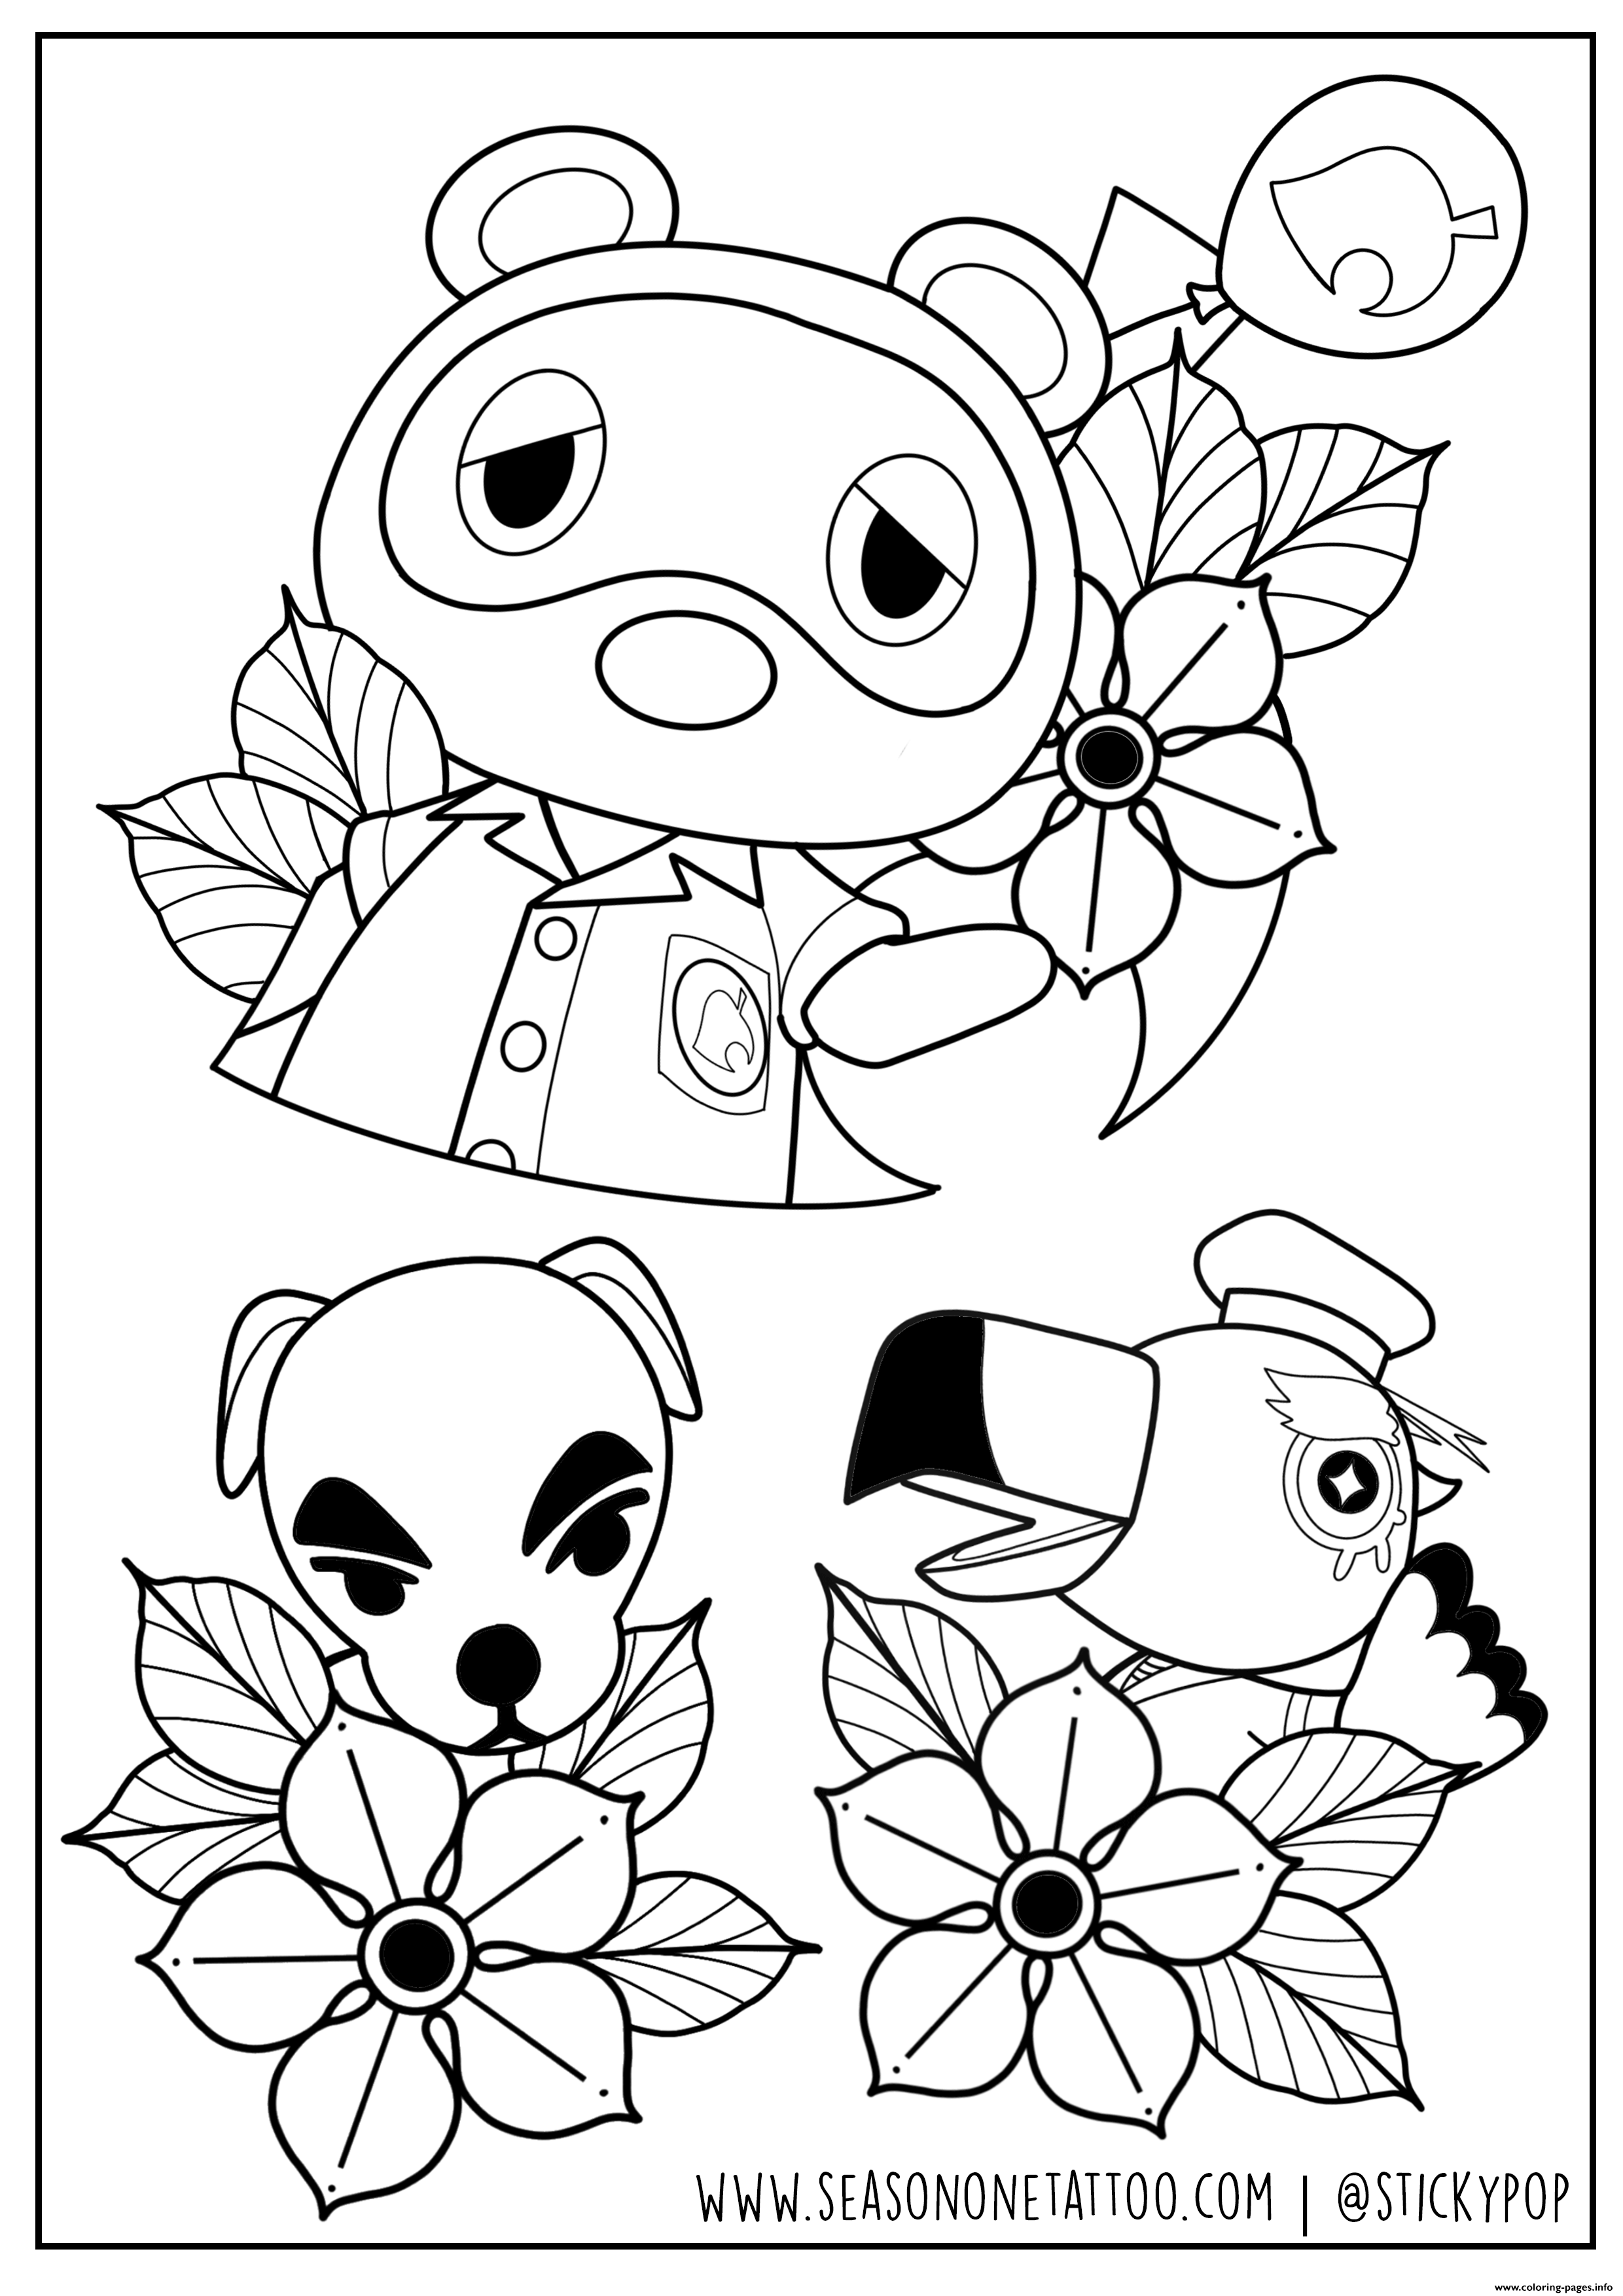 Animal Crossing By Stickypop coloring pages